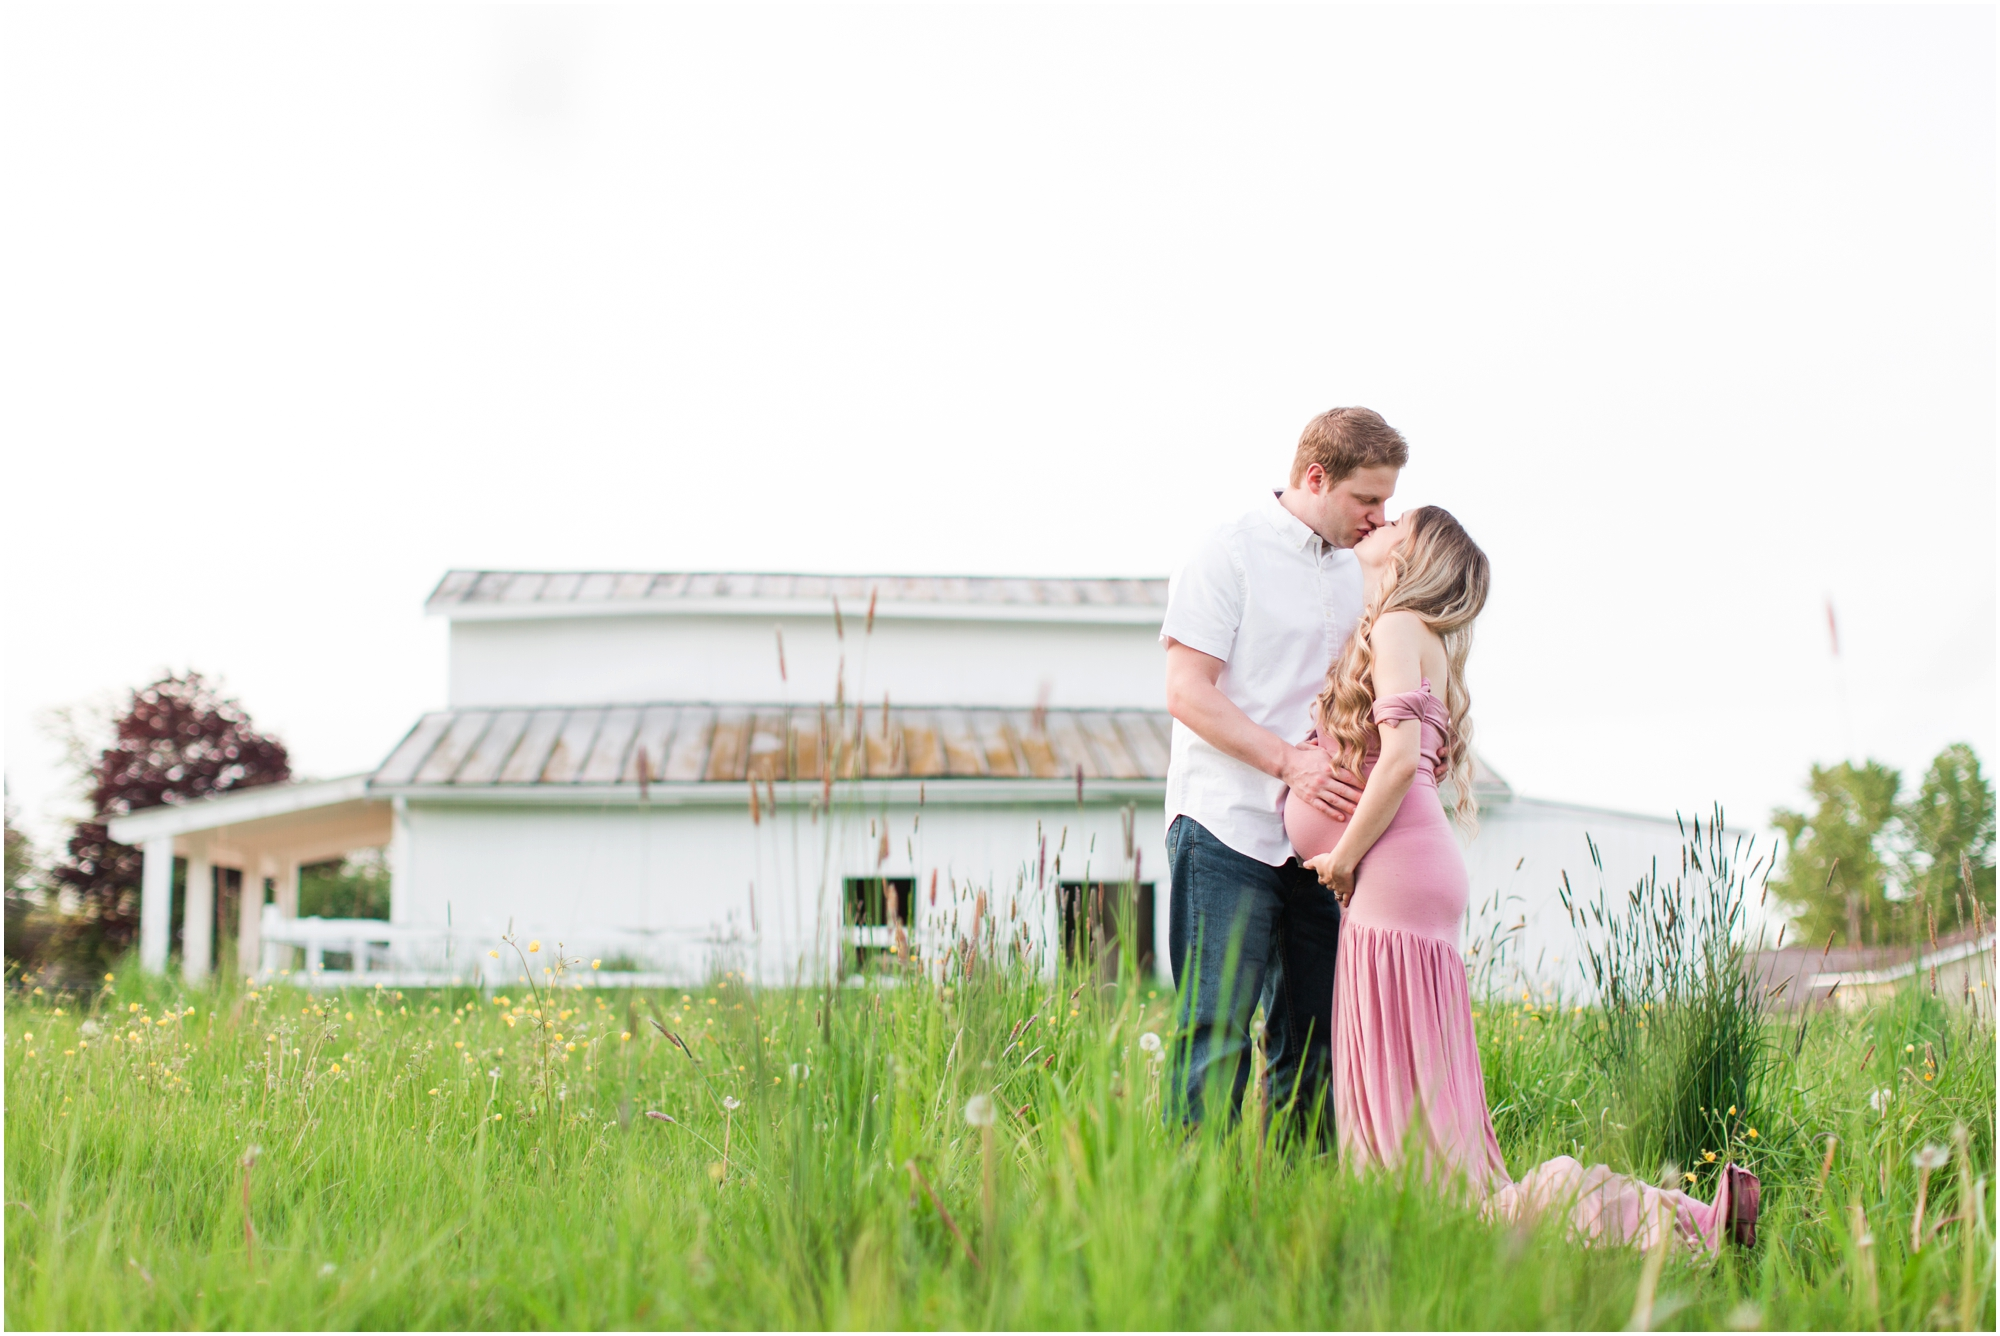 Wild Hearts Farm maternity shoot in Tacoma. Photos by Briana Calderon Photography based in the greater Seattle Tacoma Area._1220.jpg